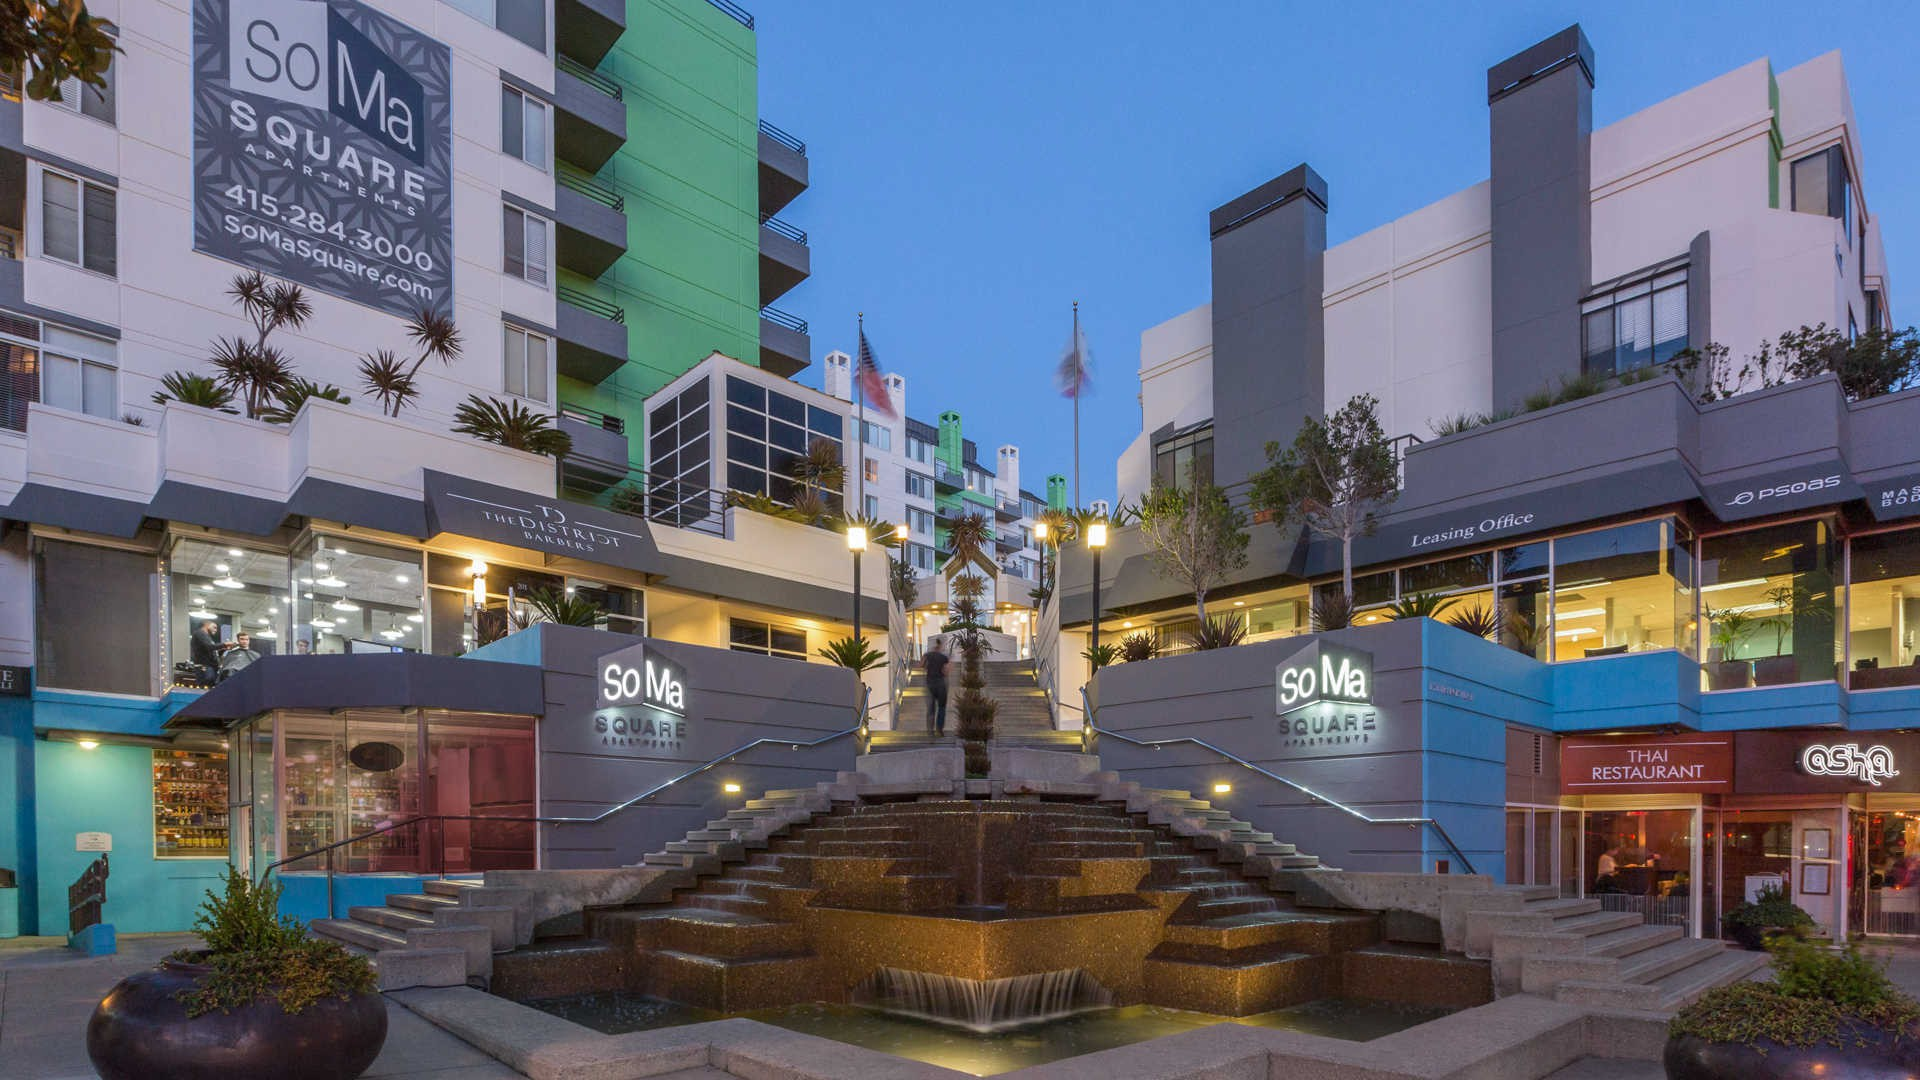 Apartments Near CCA SoMa Square for California Culinary Academy Students in San Francisco, CA